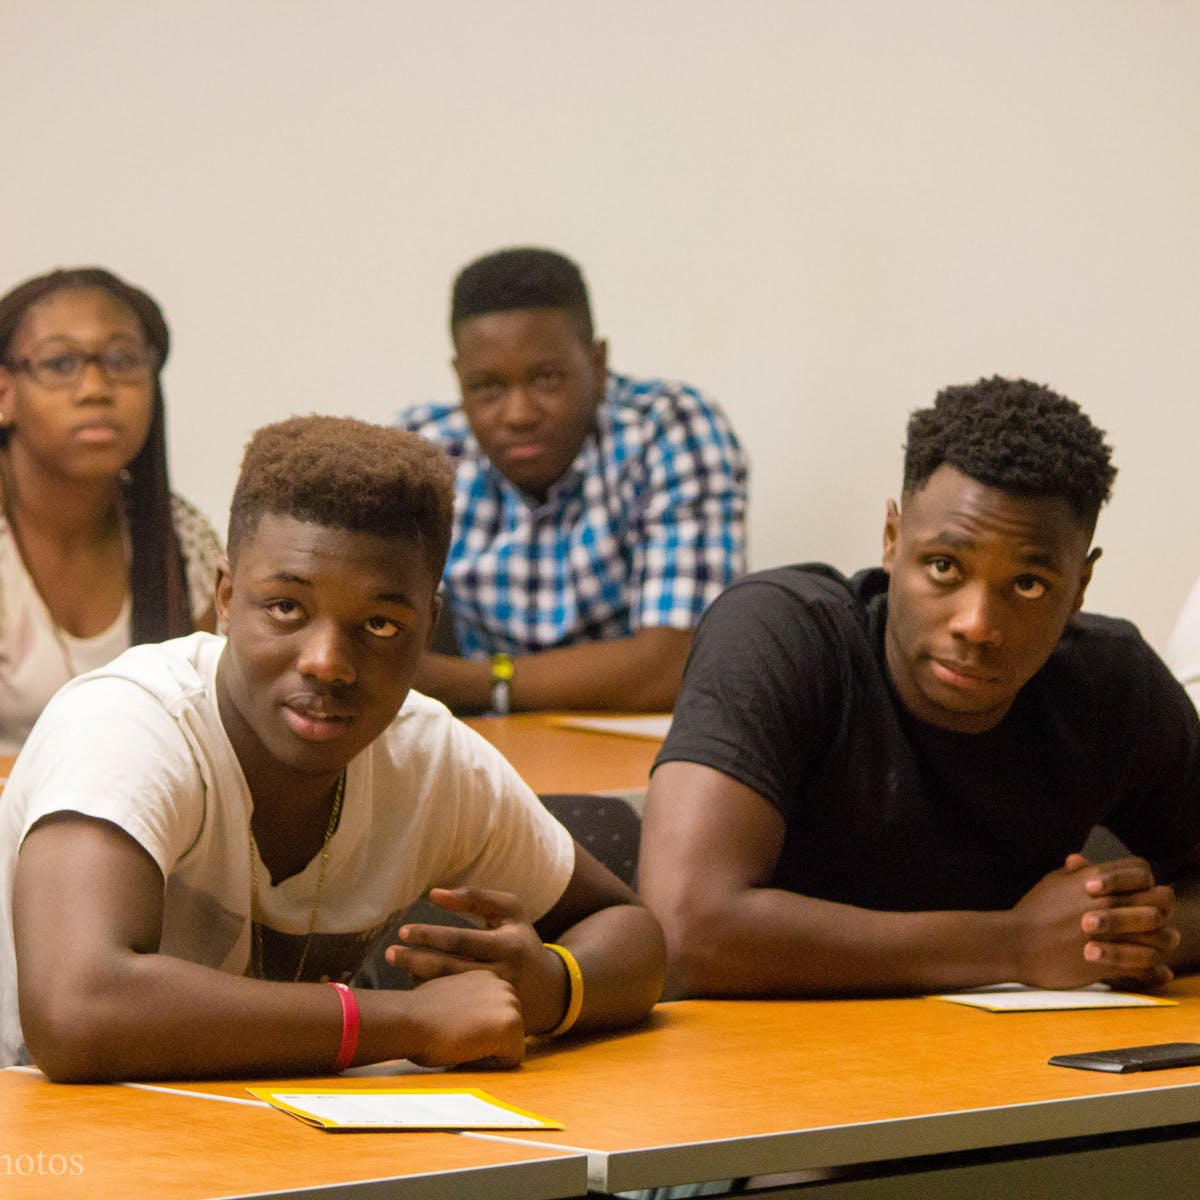 What it means to be black in the American educational system